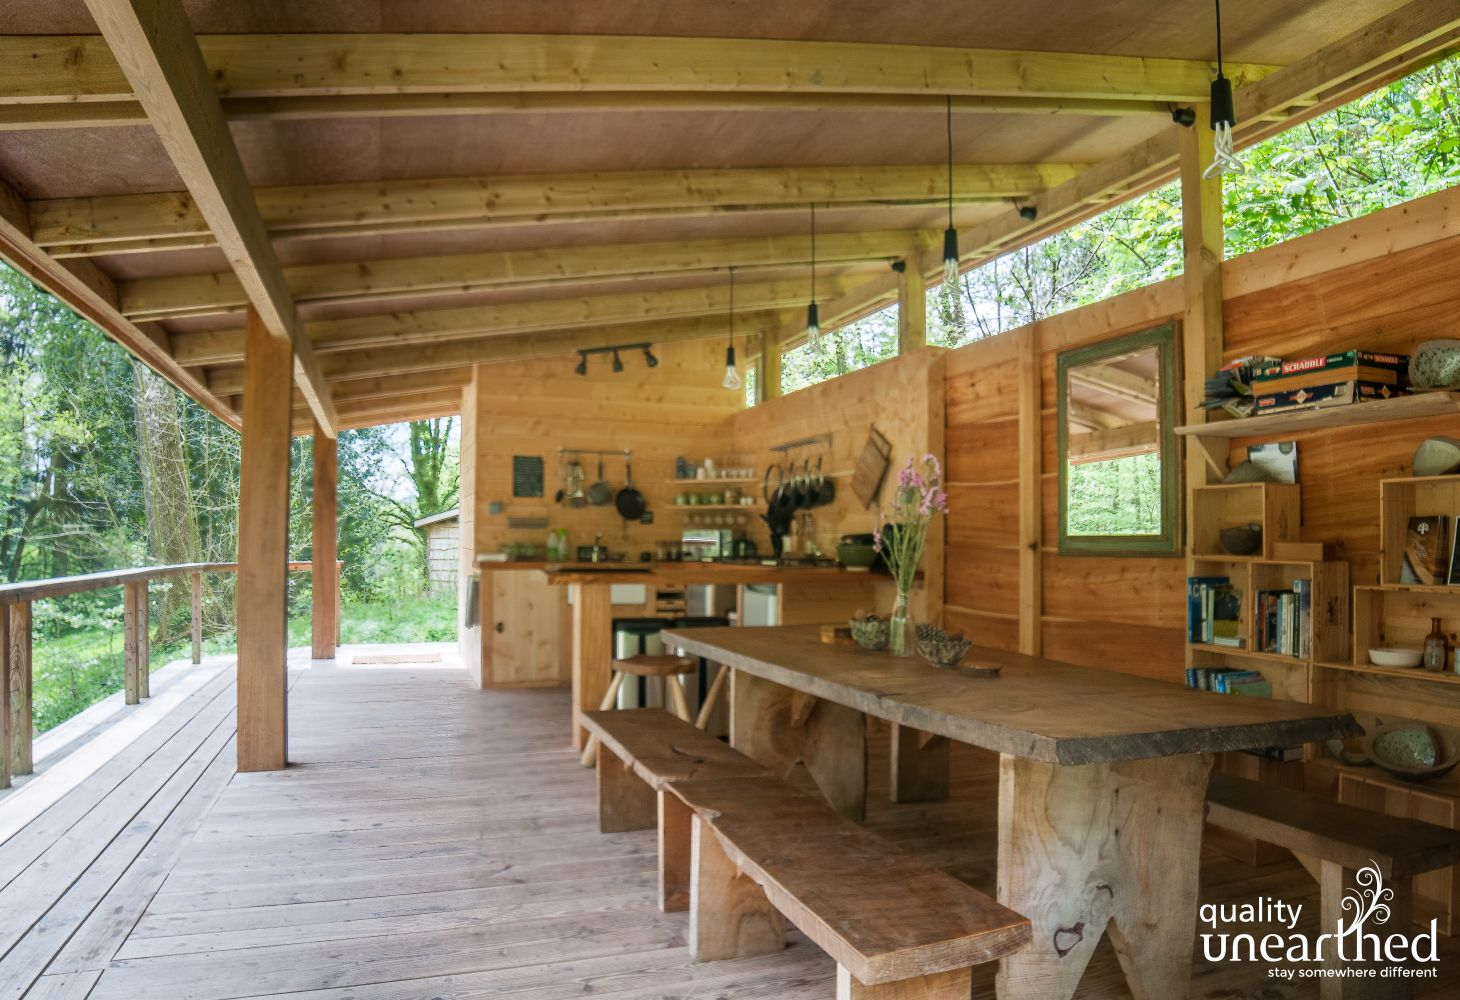 This is the communal kitchen for the guests at the family yurts and cabin